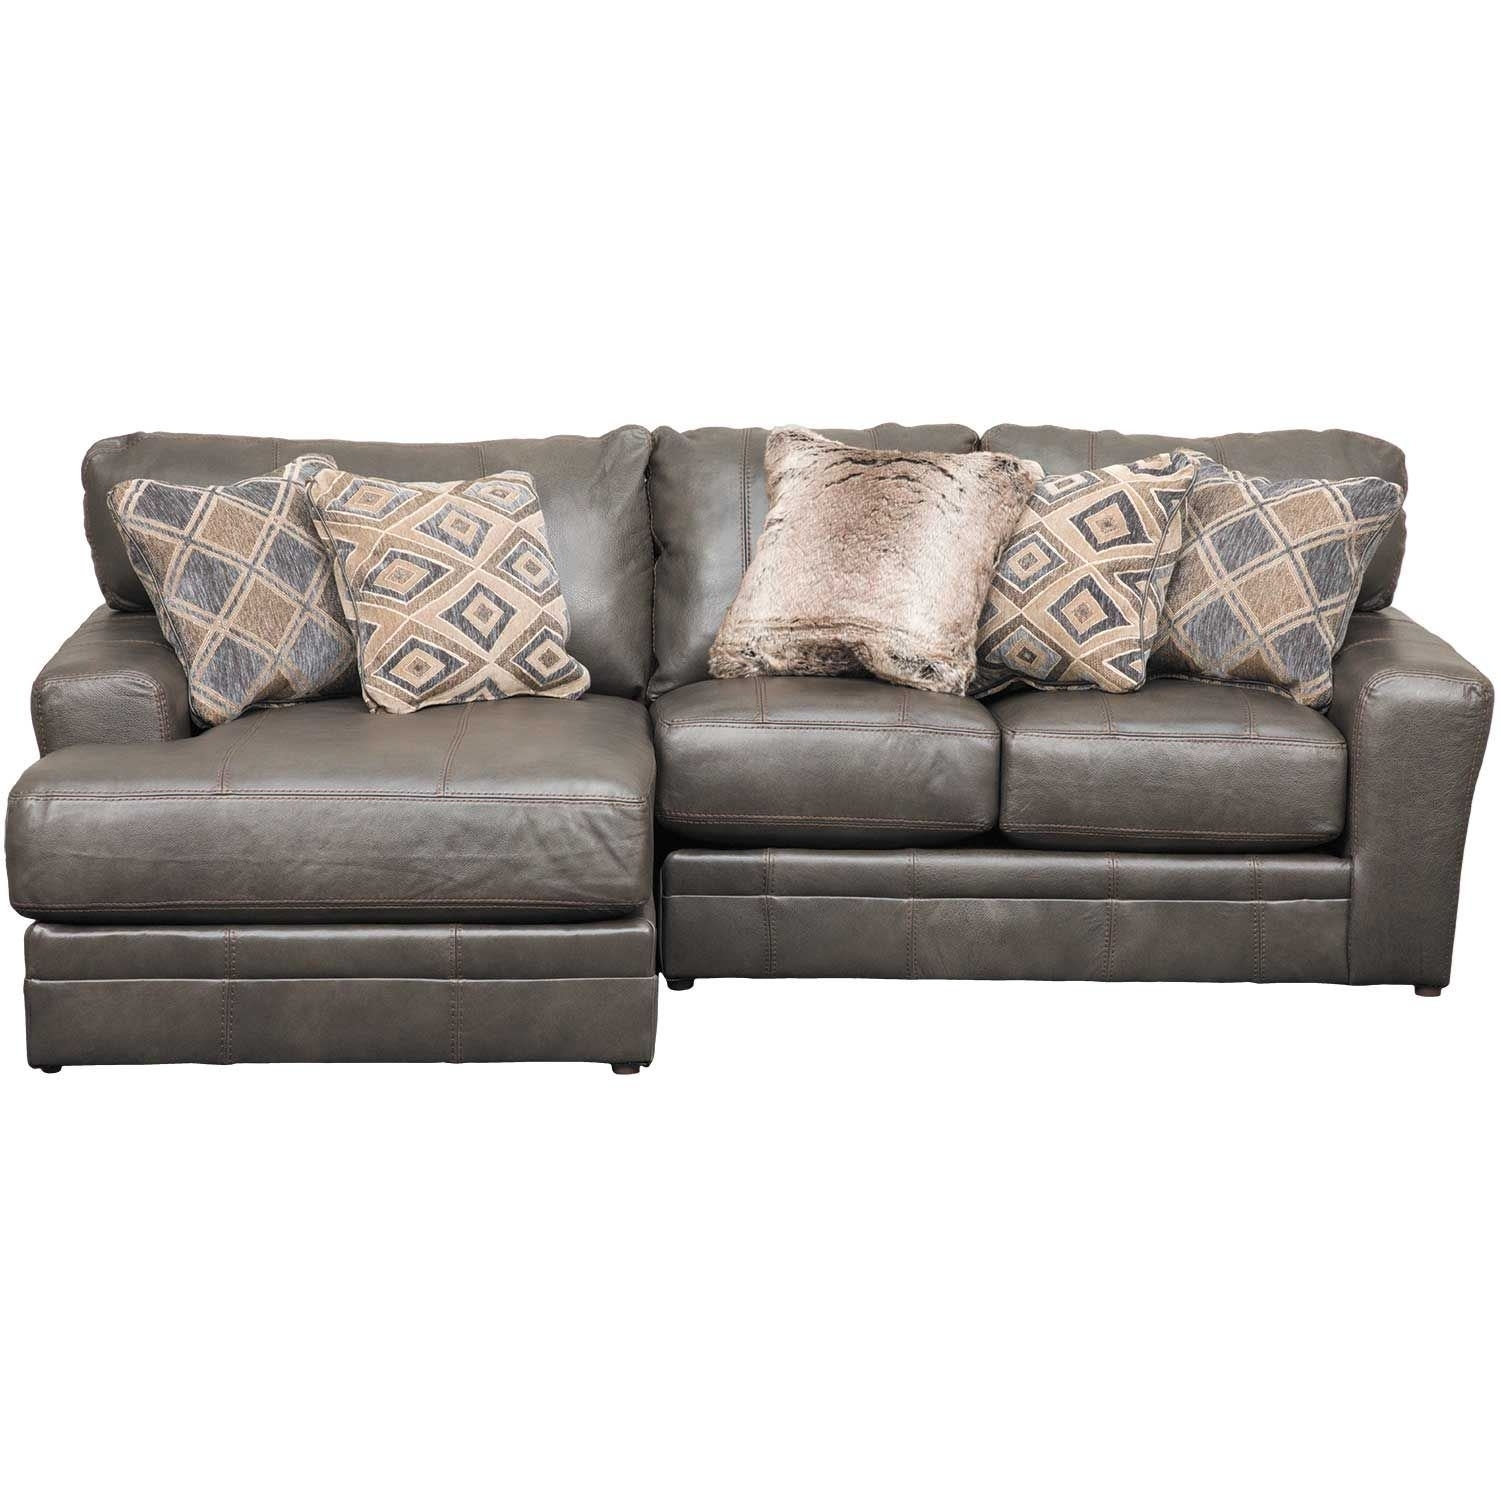 Denali 2 Piece Italian Leather Sectional With Laf Chaise | 4378 75 Inside Cosmos Grey 2 Piece Sectionals With Laf Chaise (Image 12 of 25)